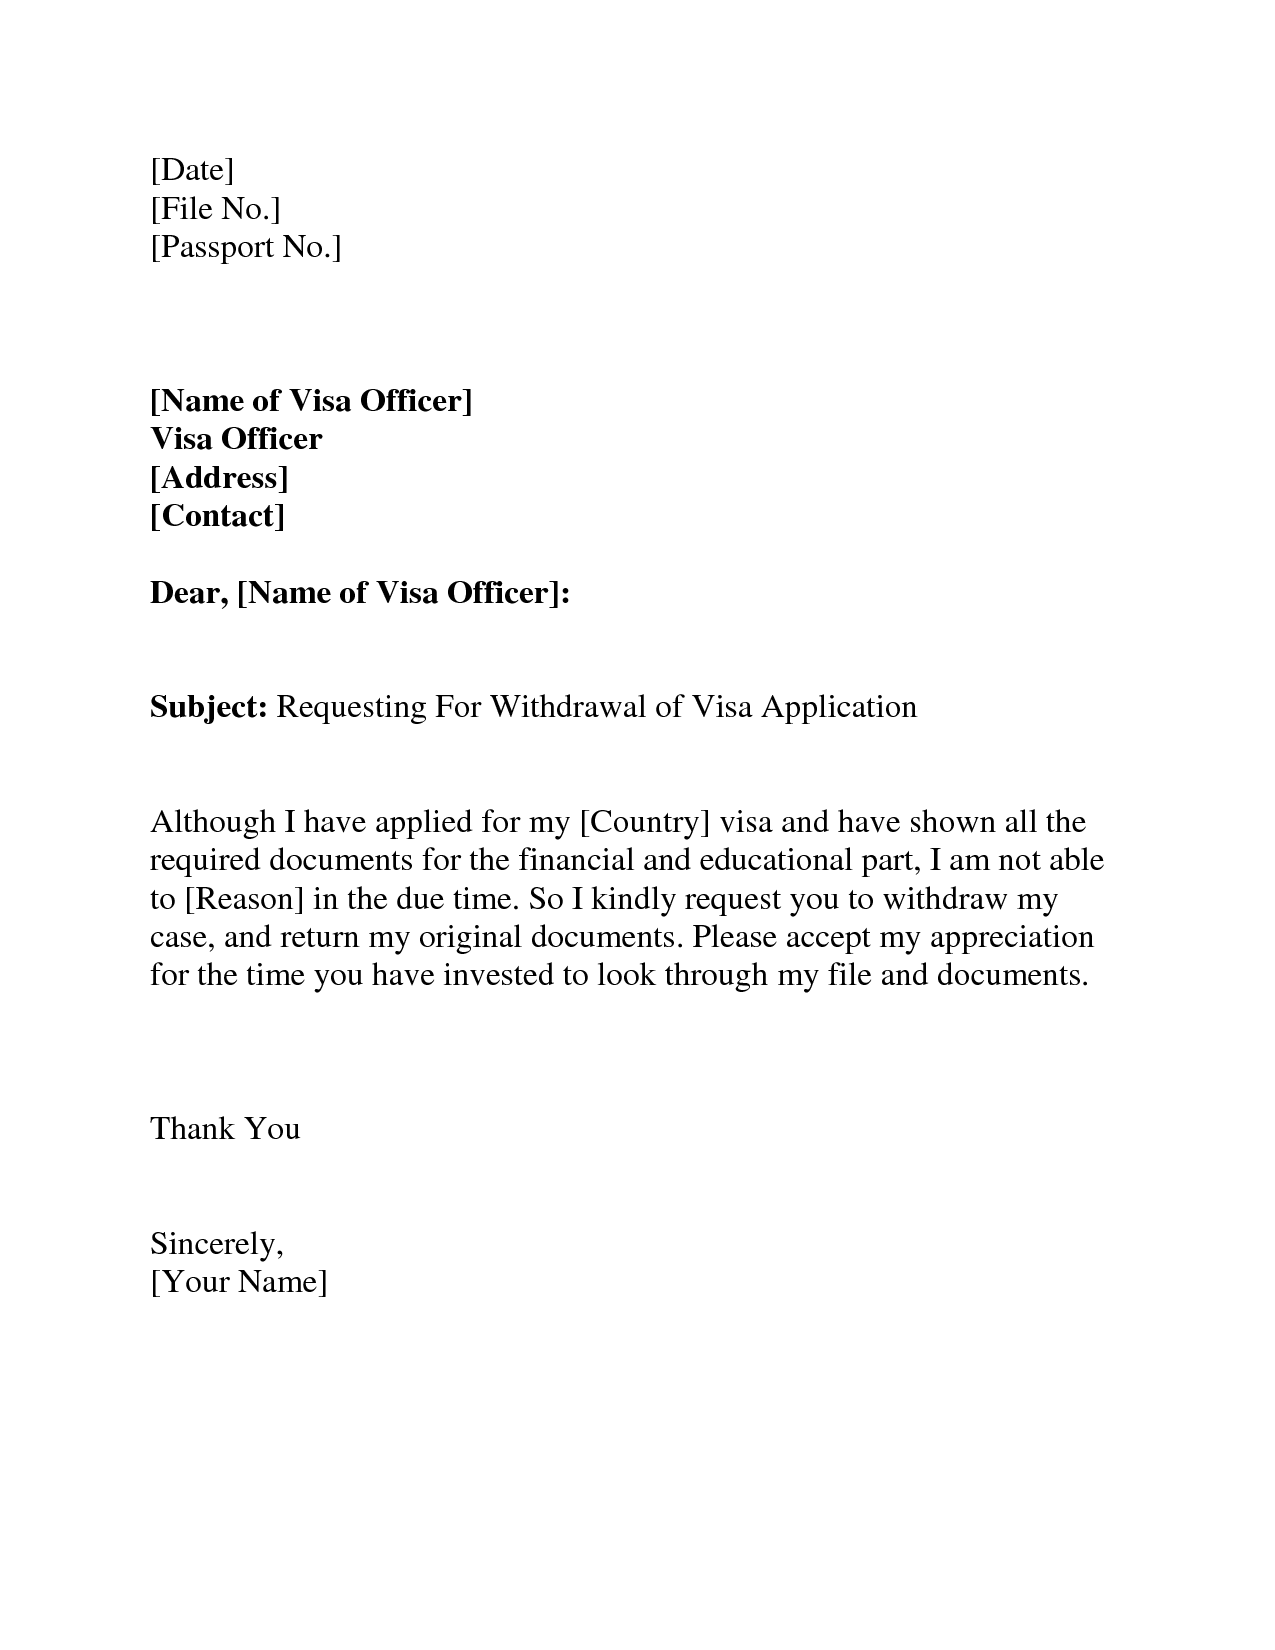 cover letter visa application australia write on notebook papervisa application letter application letter sample - Australian Visa Application Cover Letter